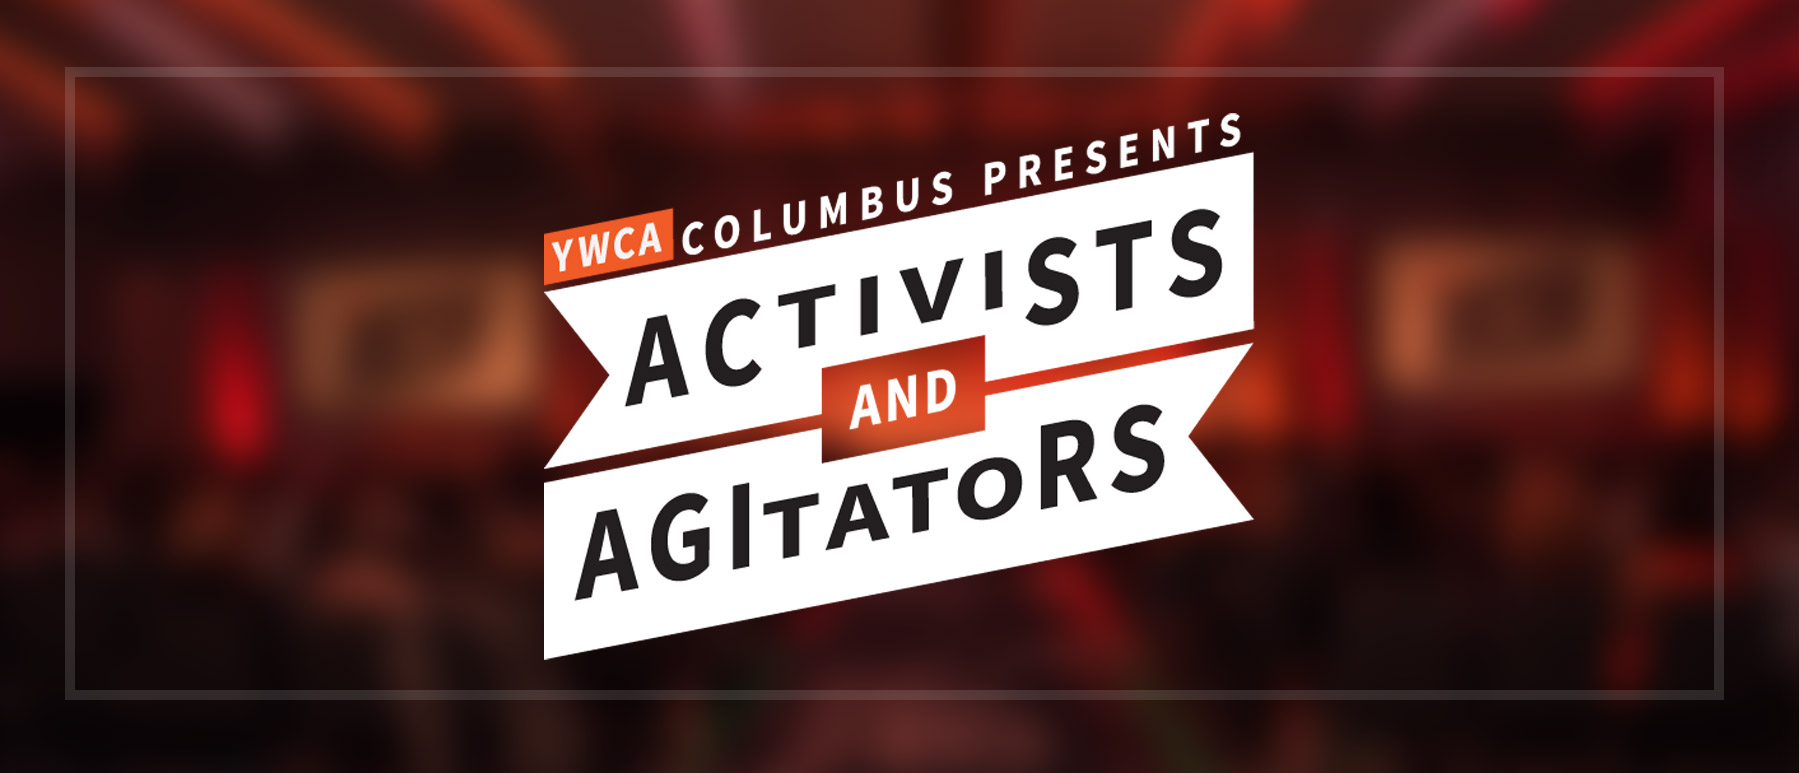 activists and agitators